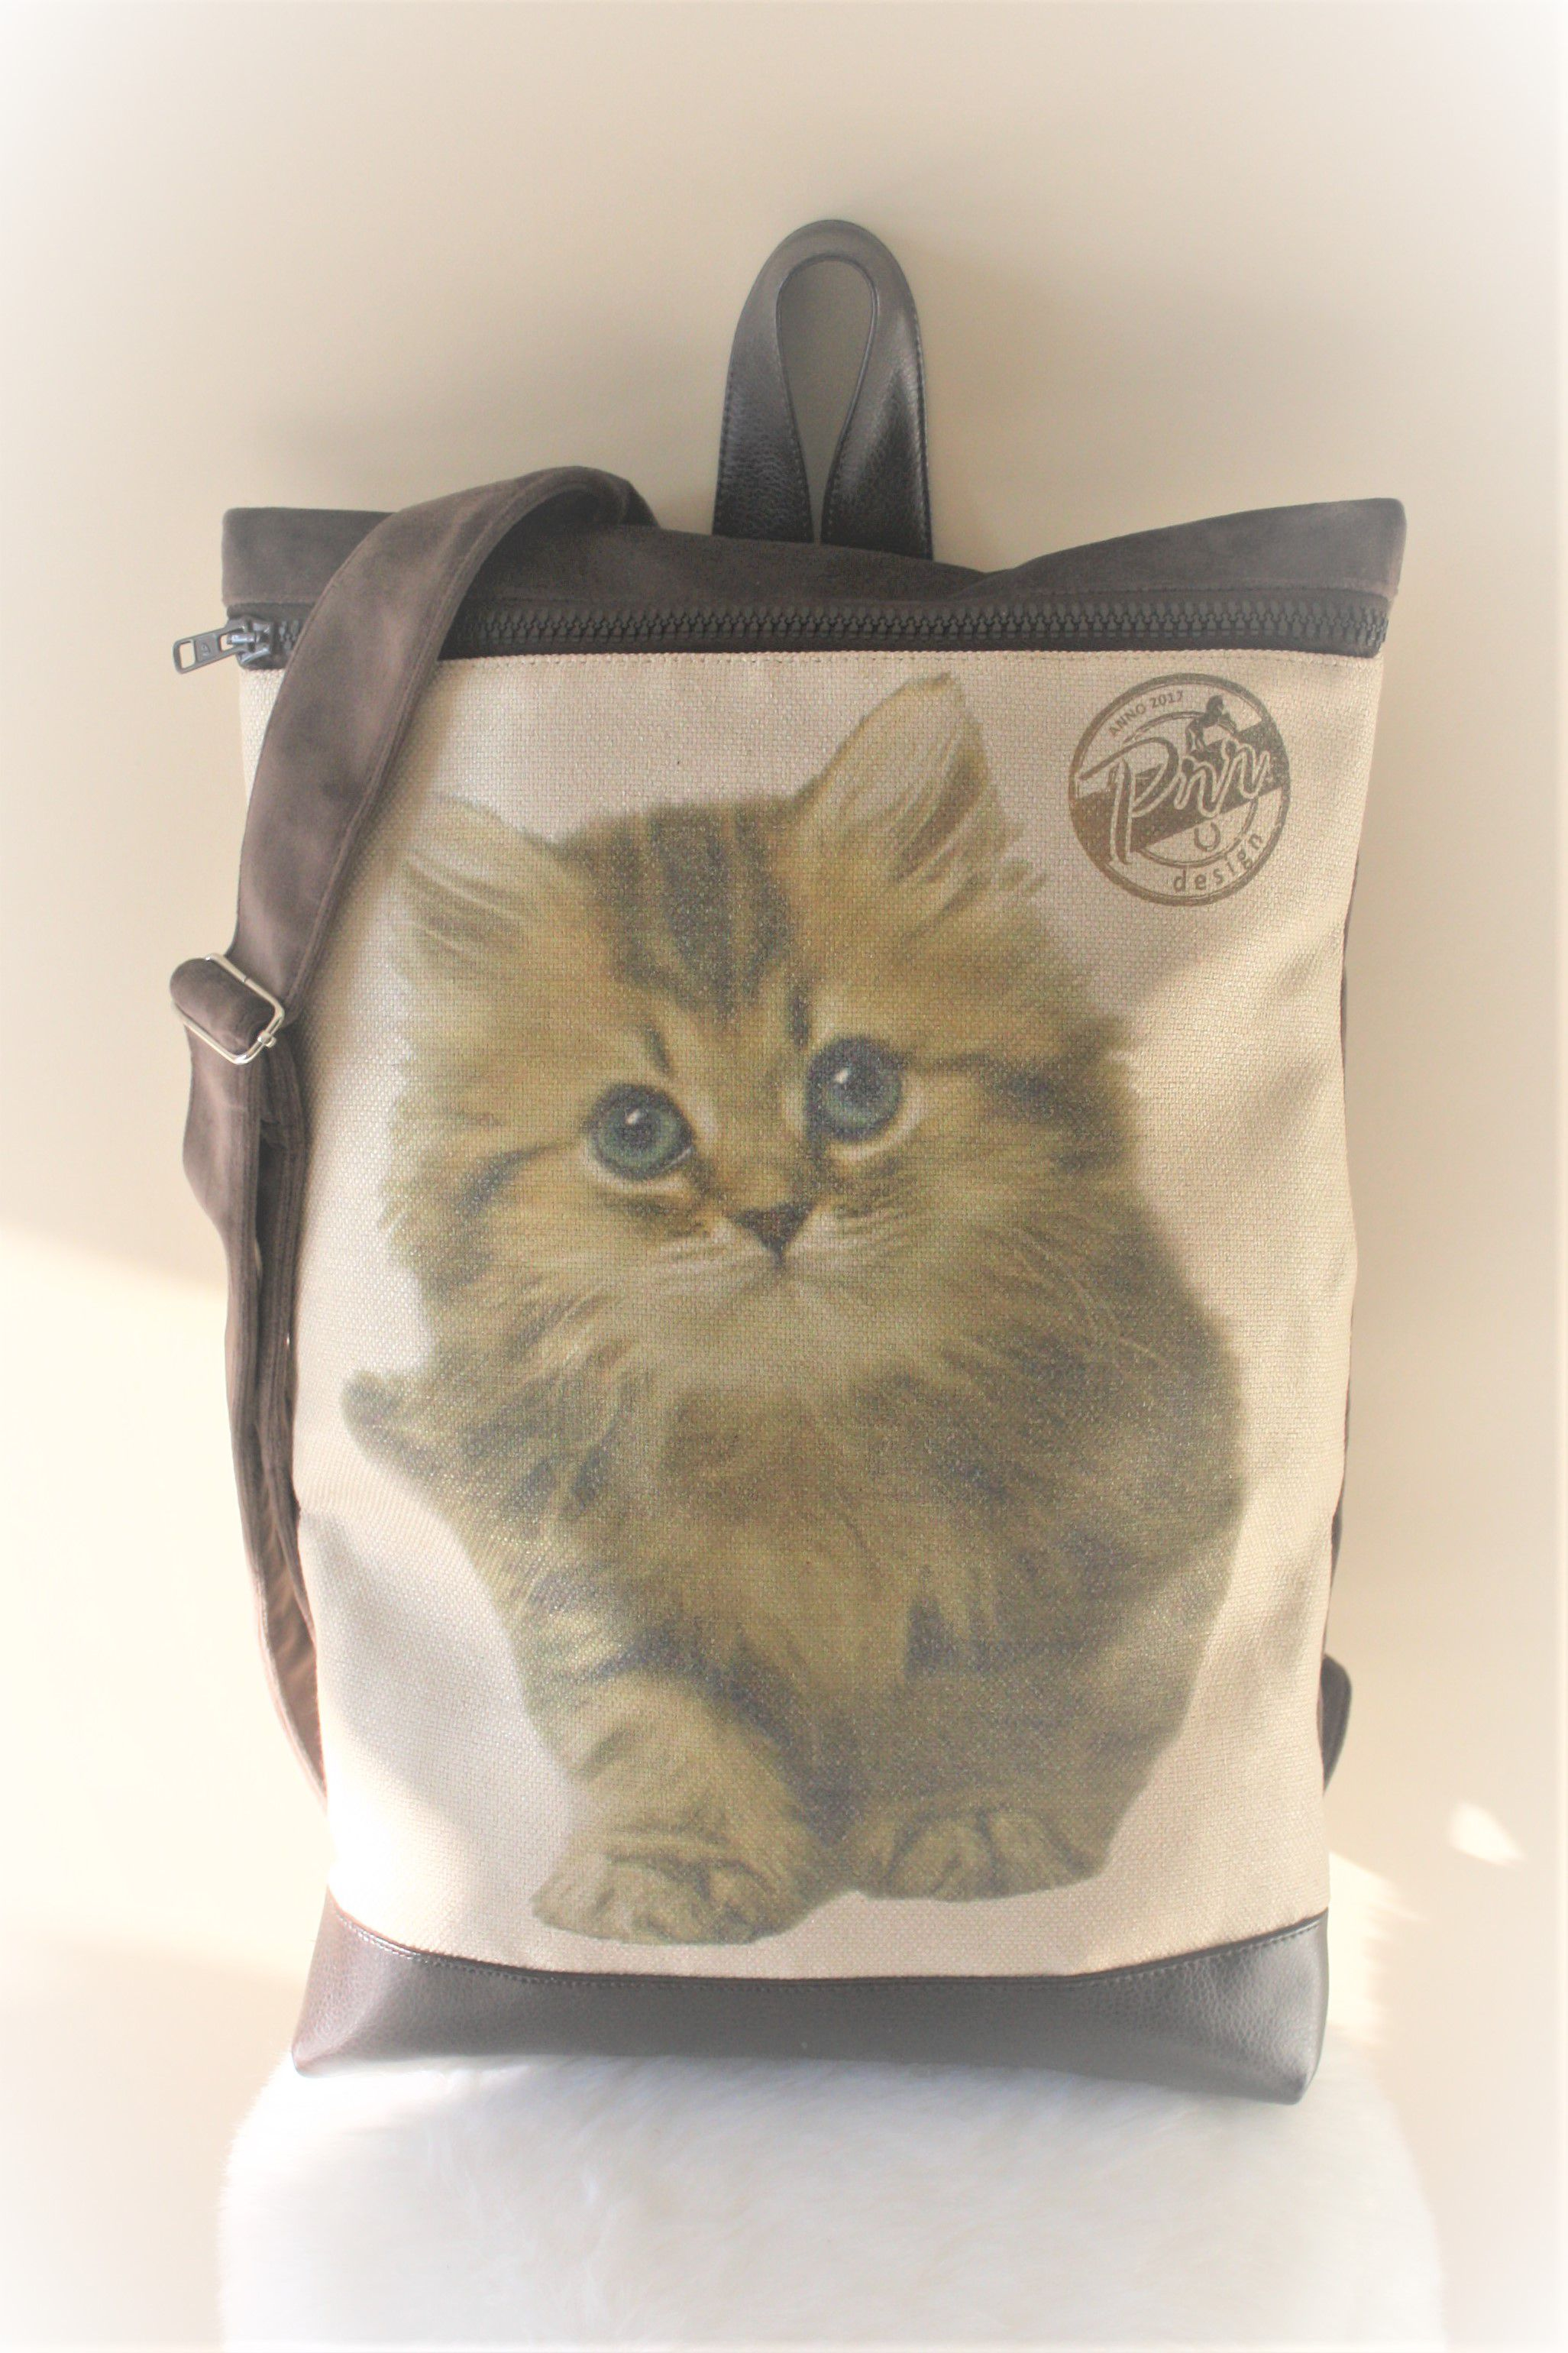 best pack friend cat vegan gift lovers cute rucksack city backpack cutest perfect